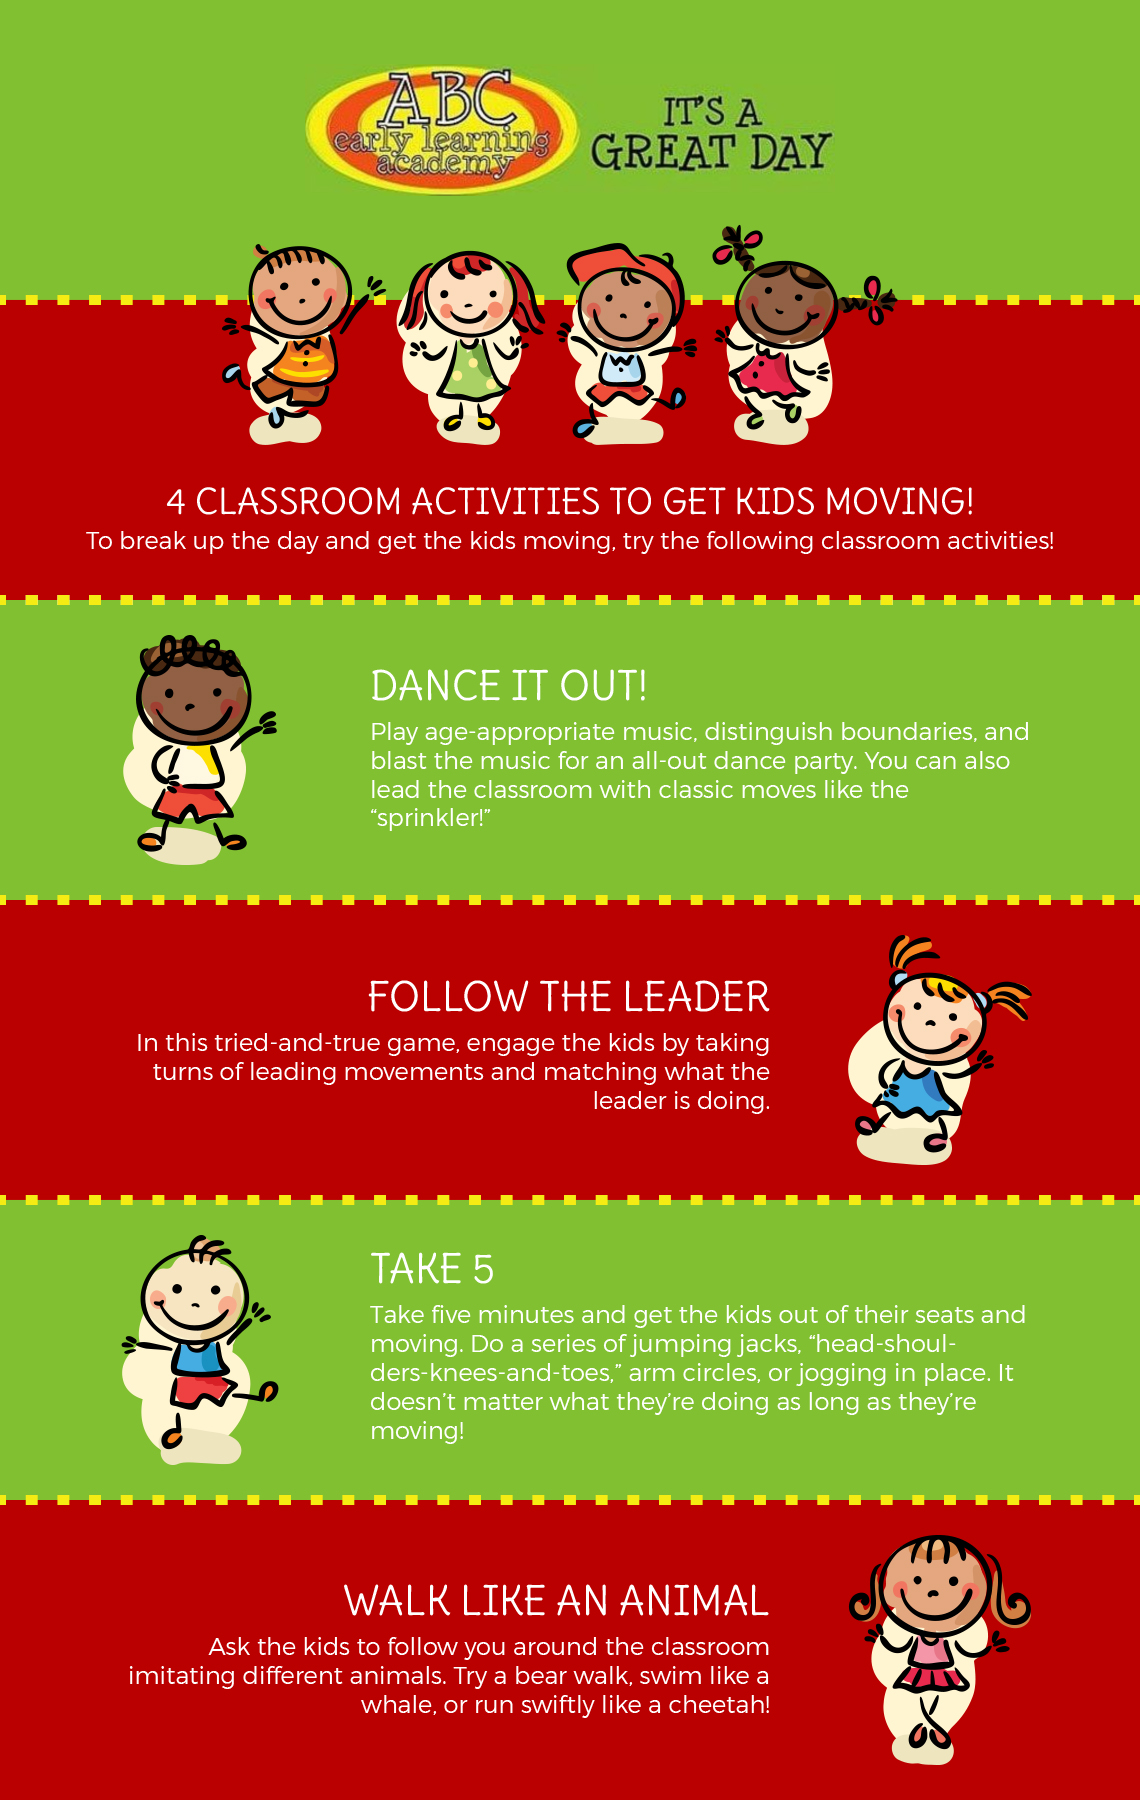 4-Classroom-Activities-to-Get-Kids-Moving-Infographic